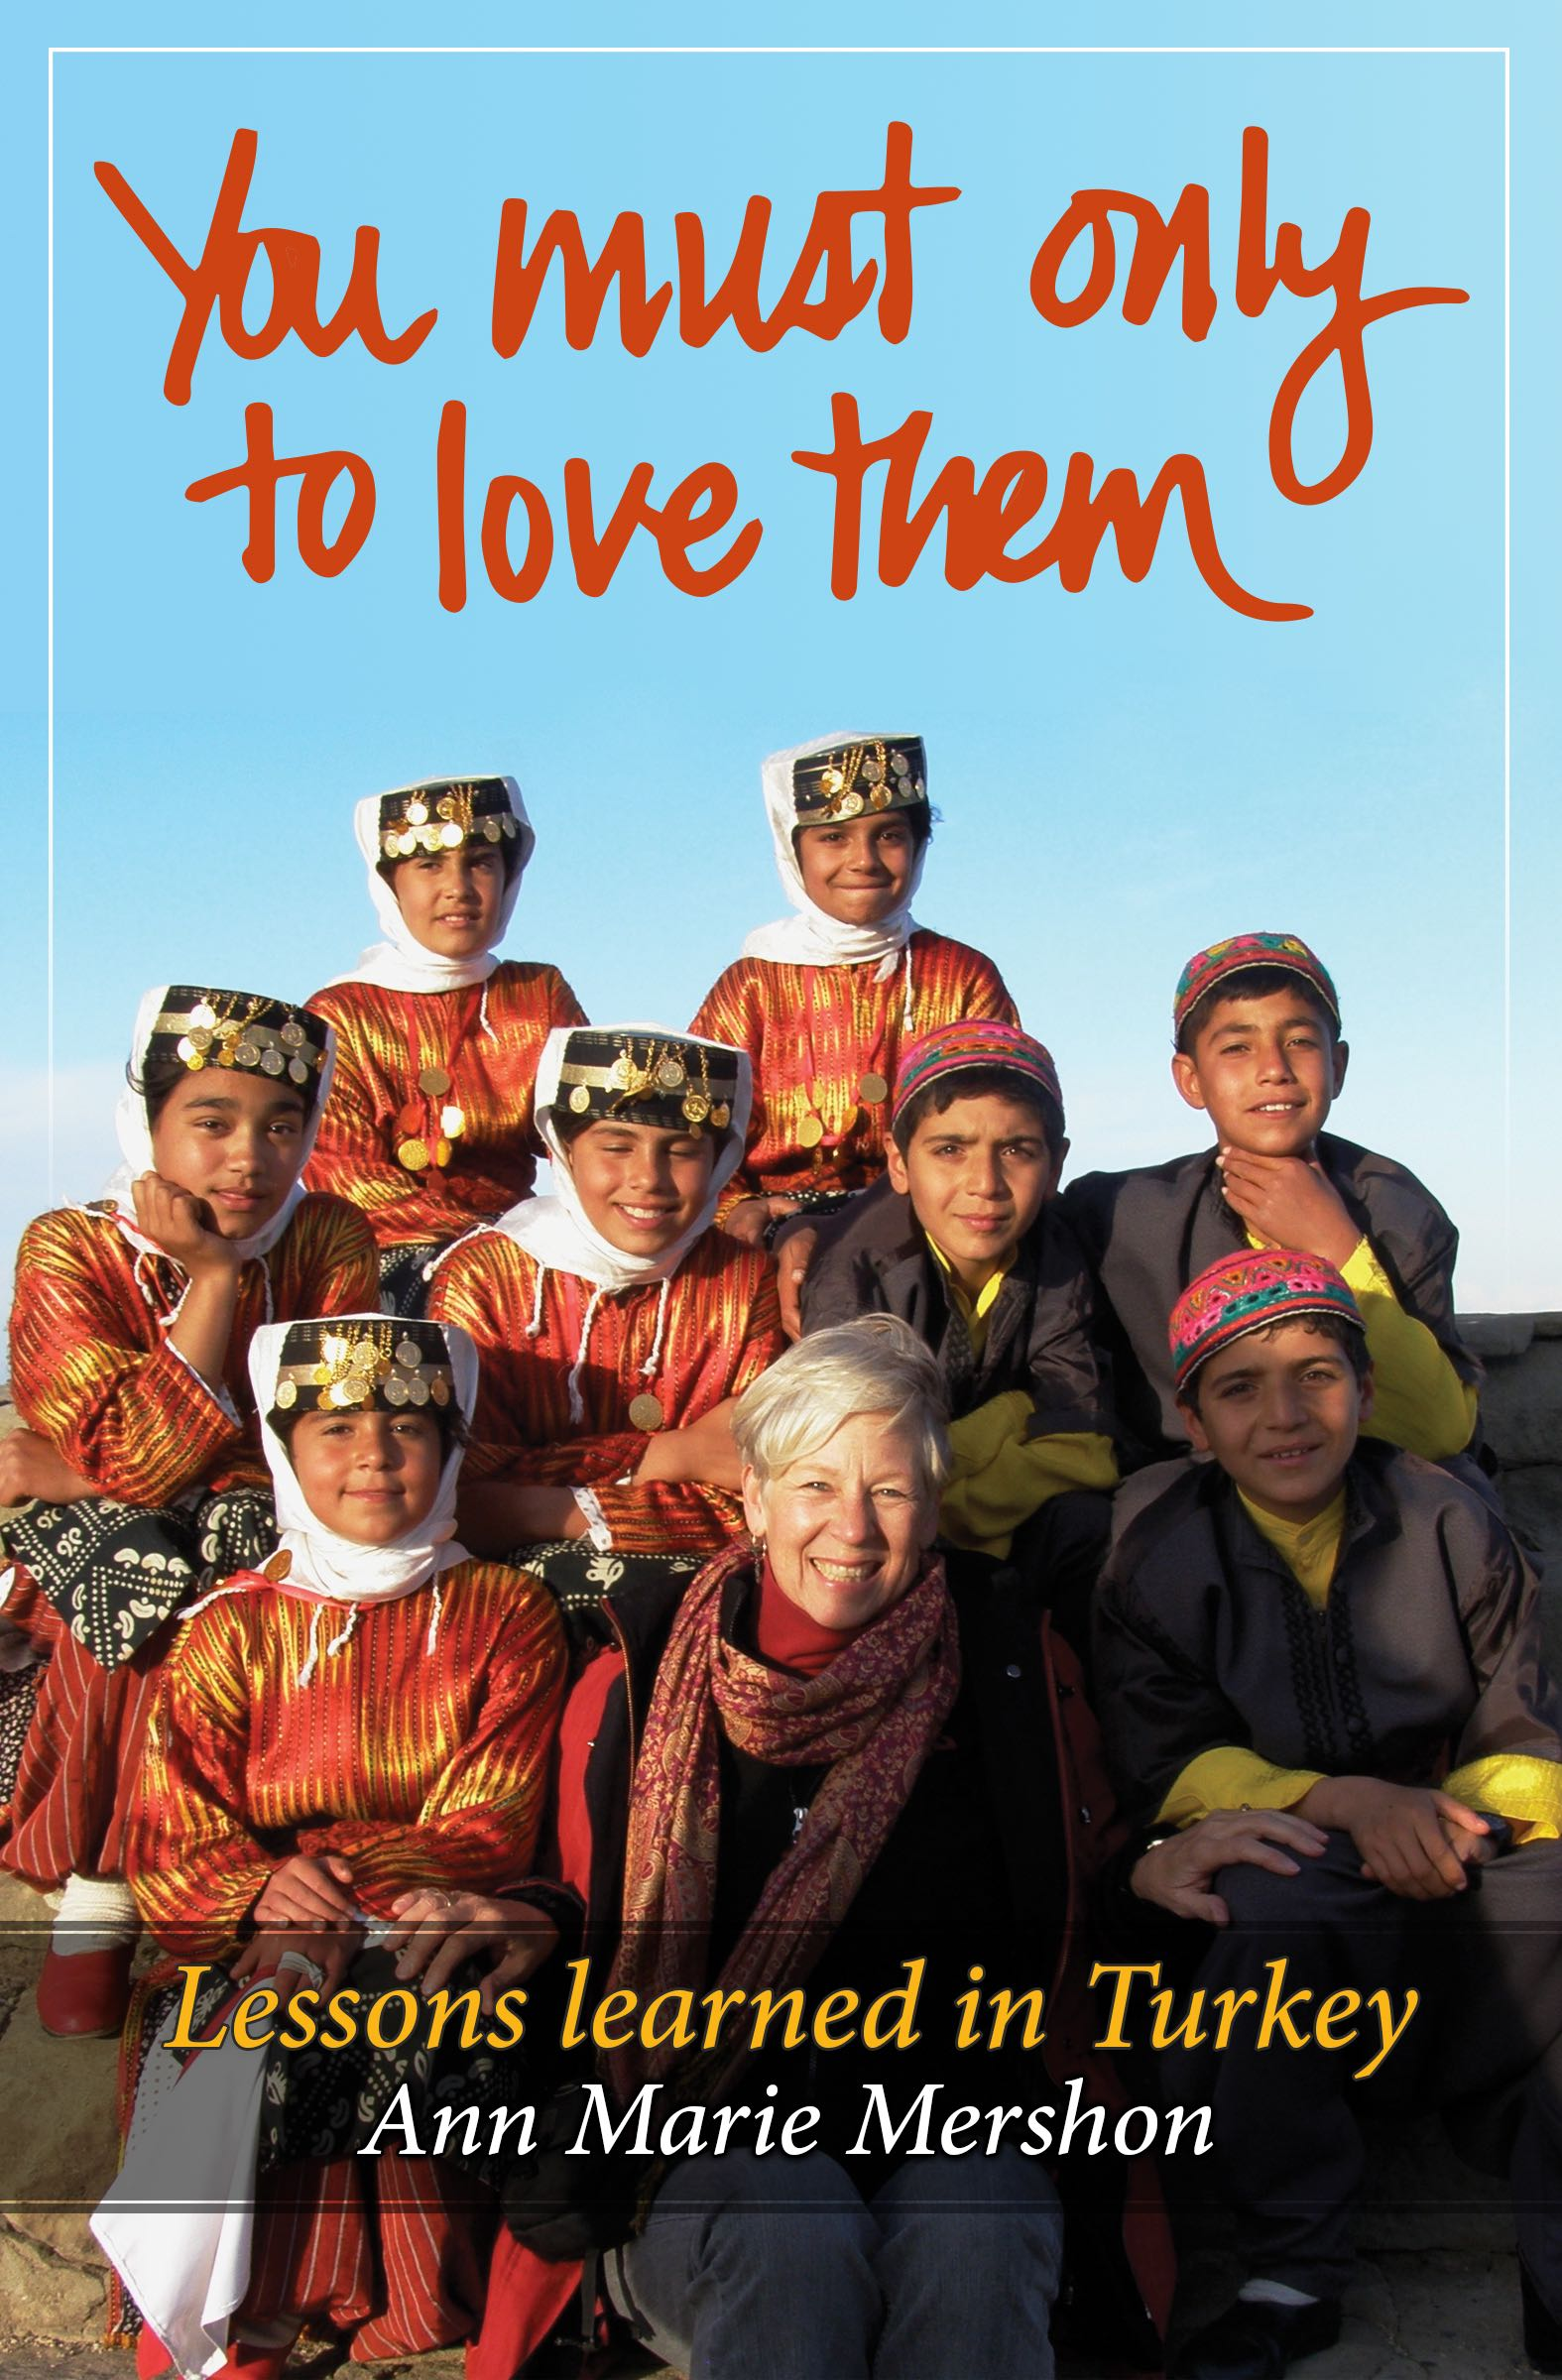 You must only to love them - LESSONS LEARNED IN TURKEYIn this memoir I share my experiences adapting to life in a country far different from my north woods Minnesota home—a country and a people that I came to adore in spite of my battles with language and loneliness.In seven years I learned a lot about the rich culture and warmth of Turkey, and I wrote this book to share these things with you.